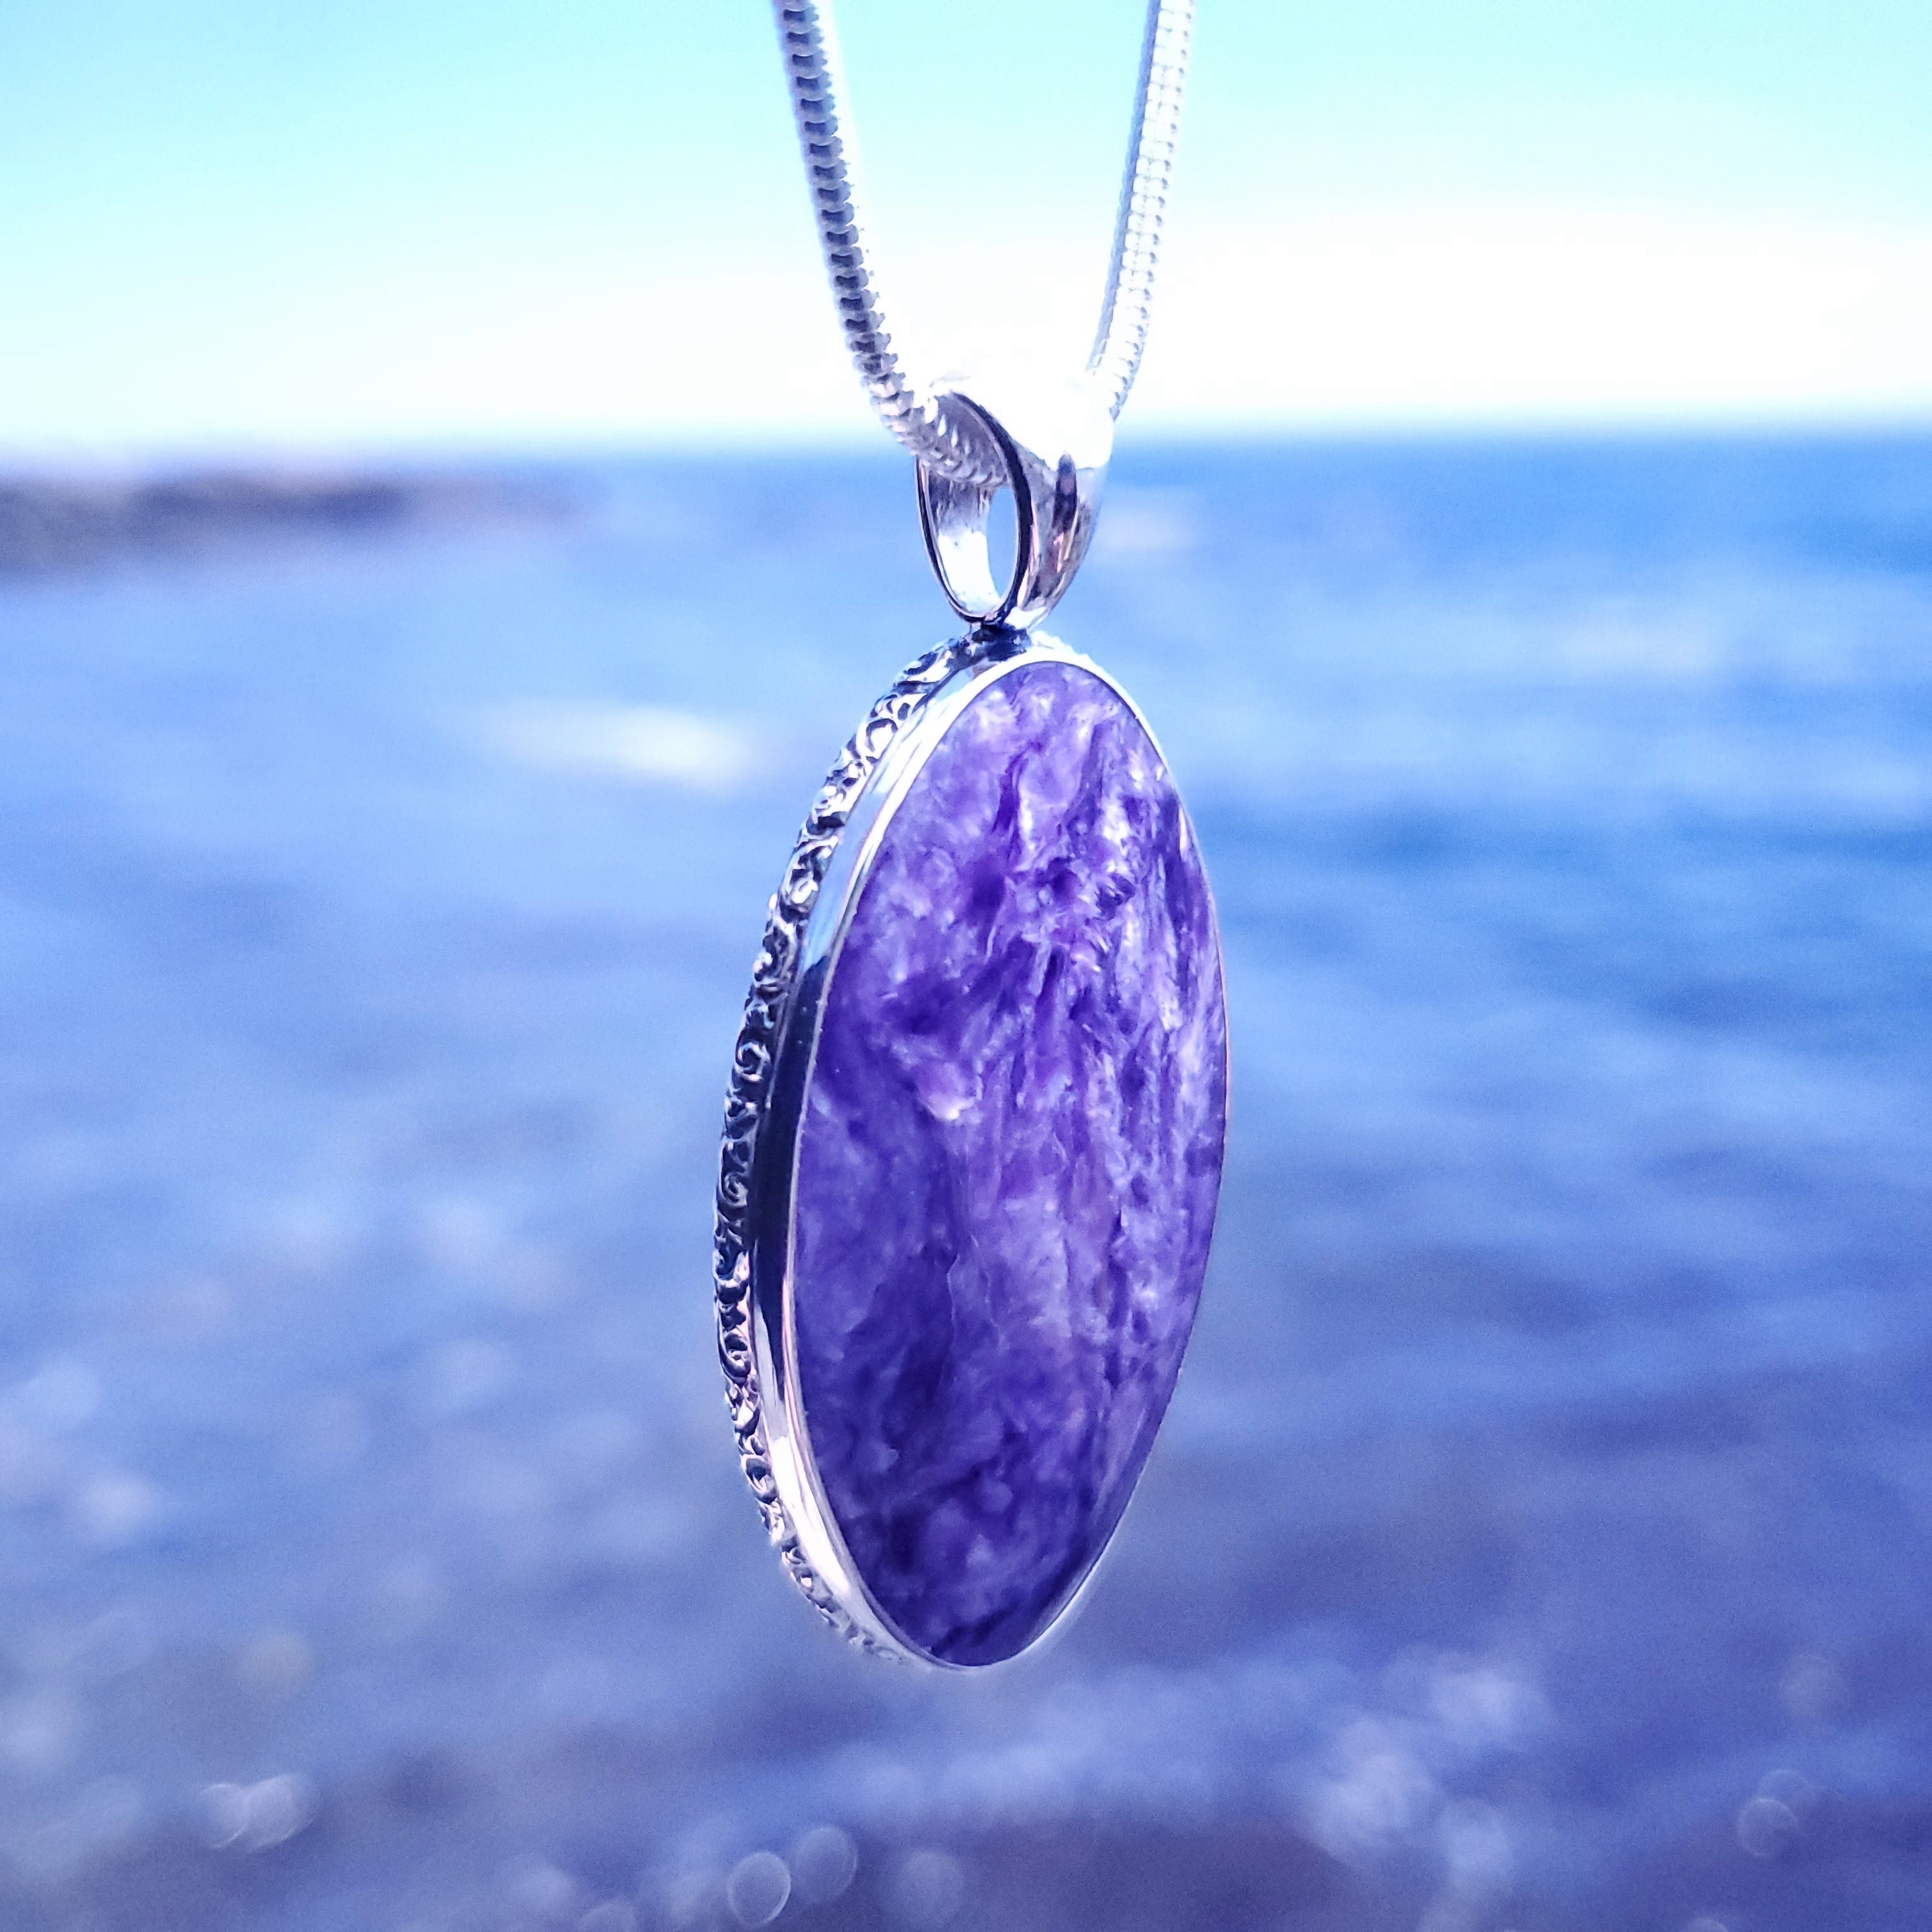 Charoite necklace with ocean in background